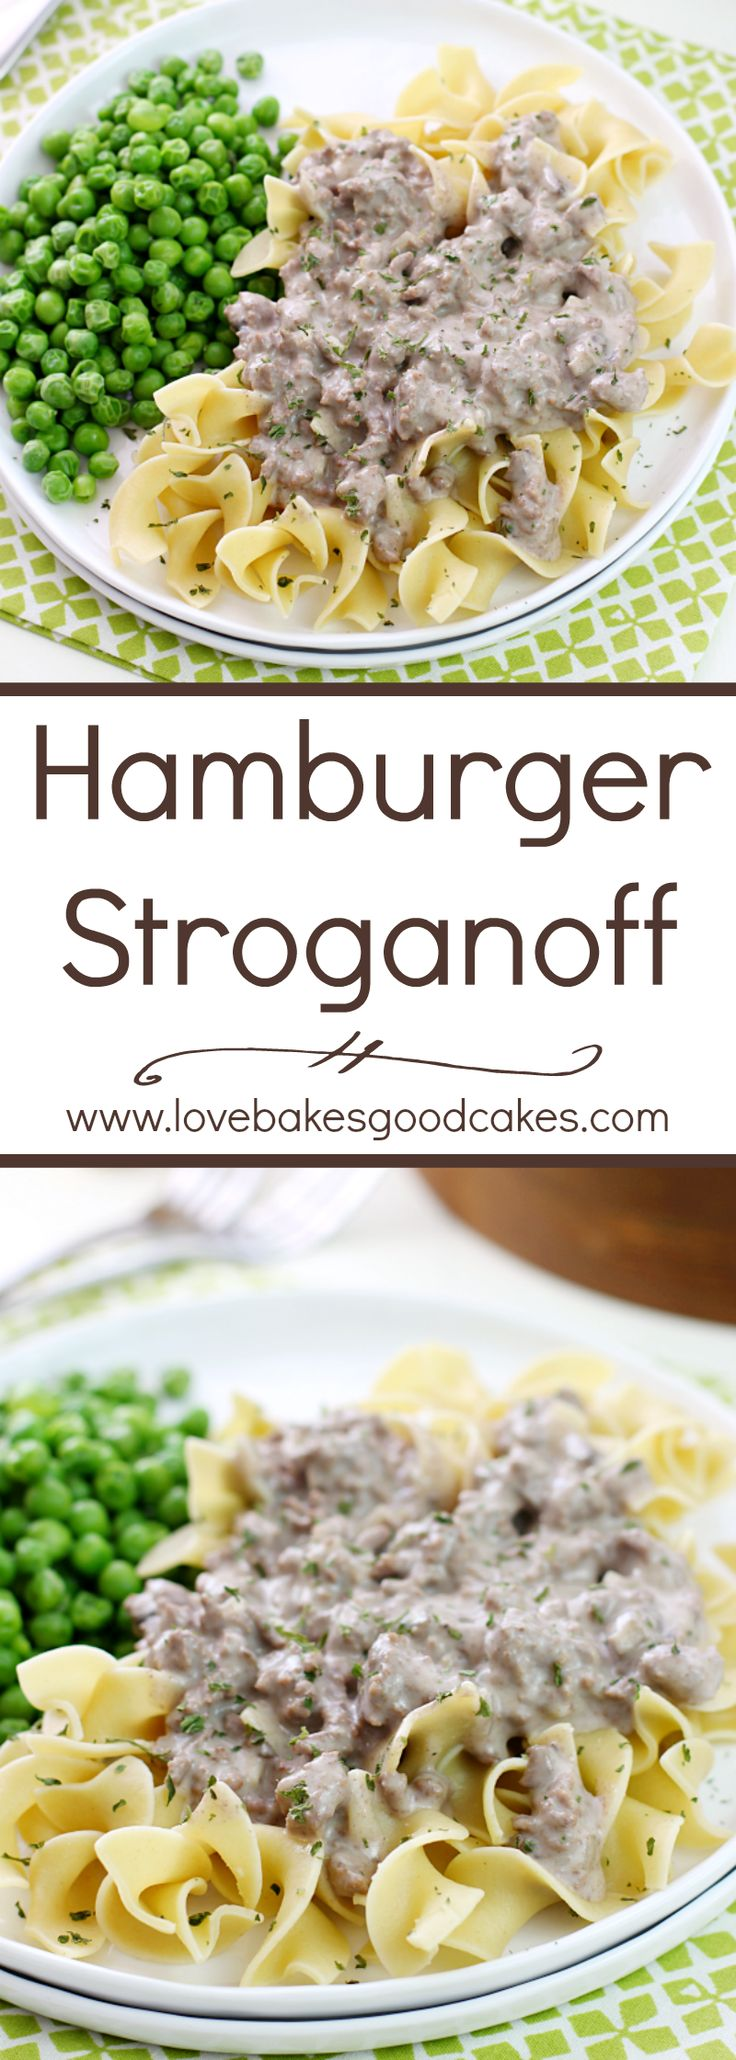 This Hamburger Stroganoff is easy on the budget and it makes the perfect weeknight meal!